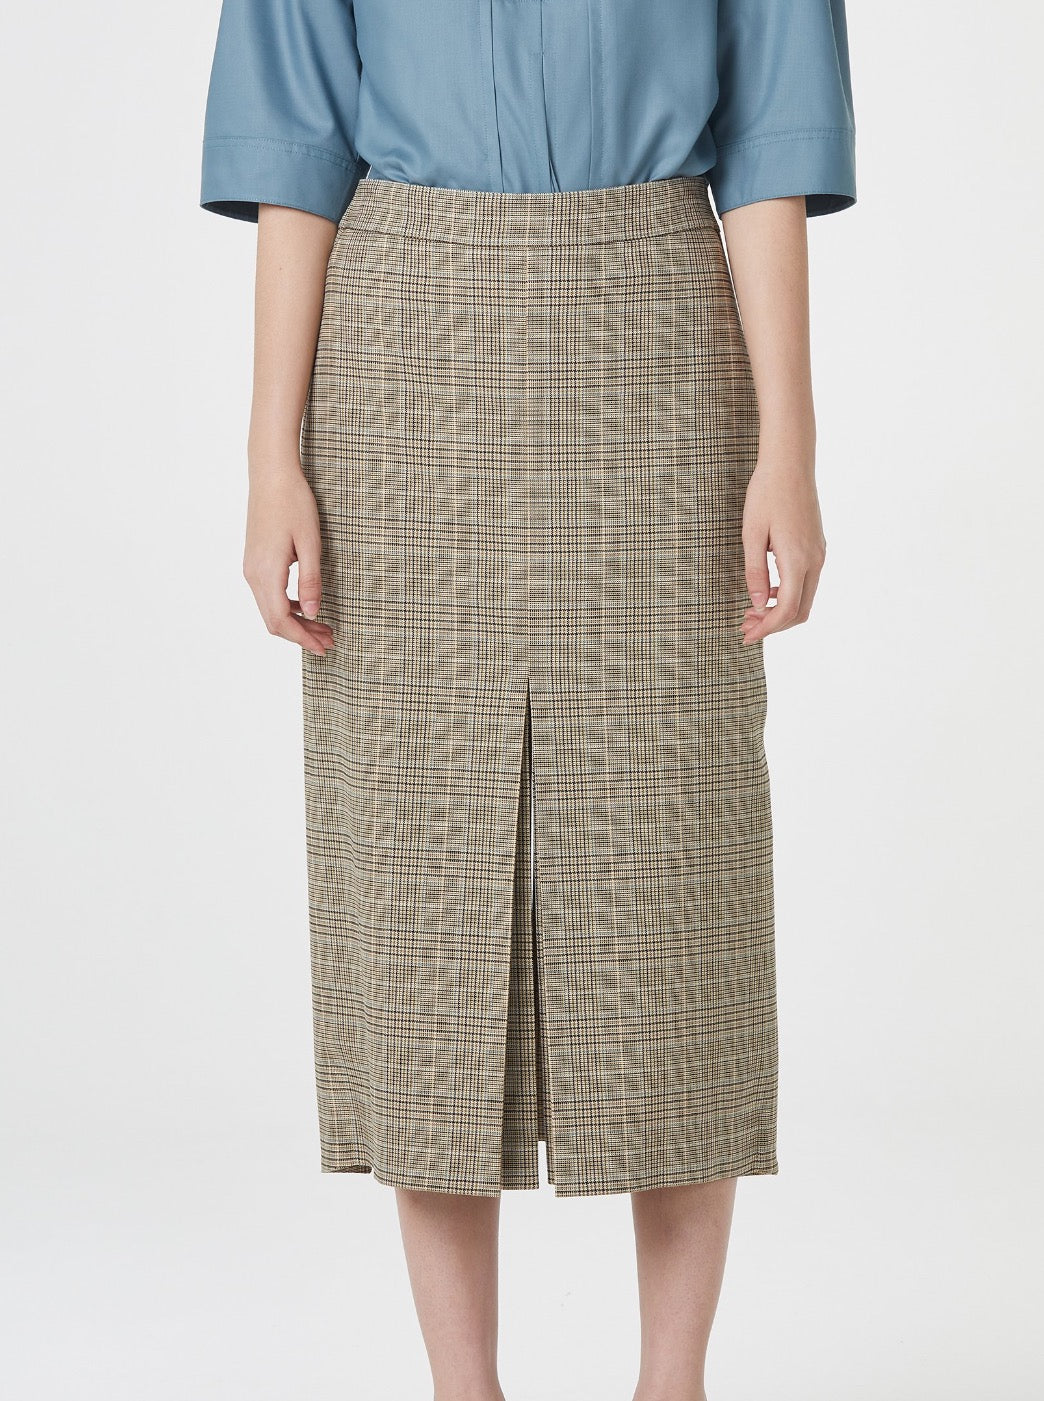 LIGHT BEIGE OPEN SPLIT SKIRT